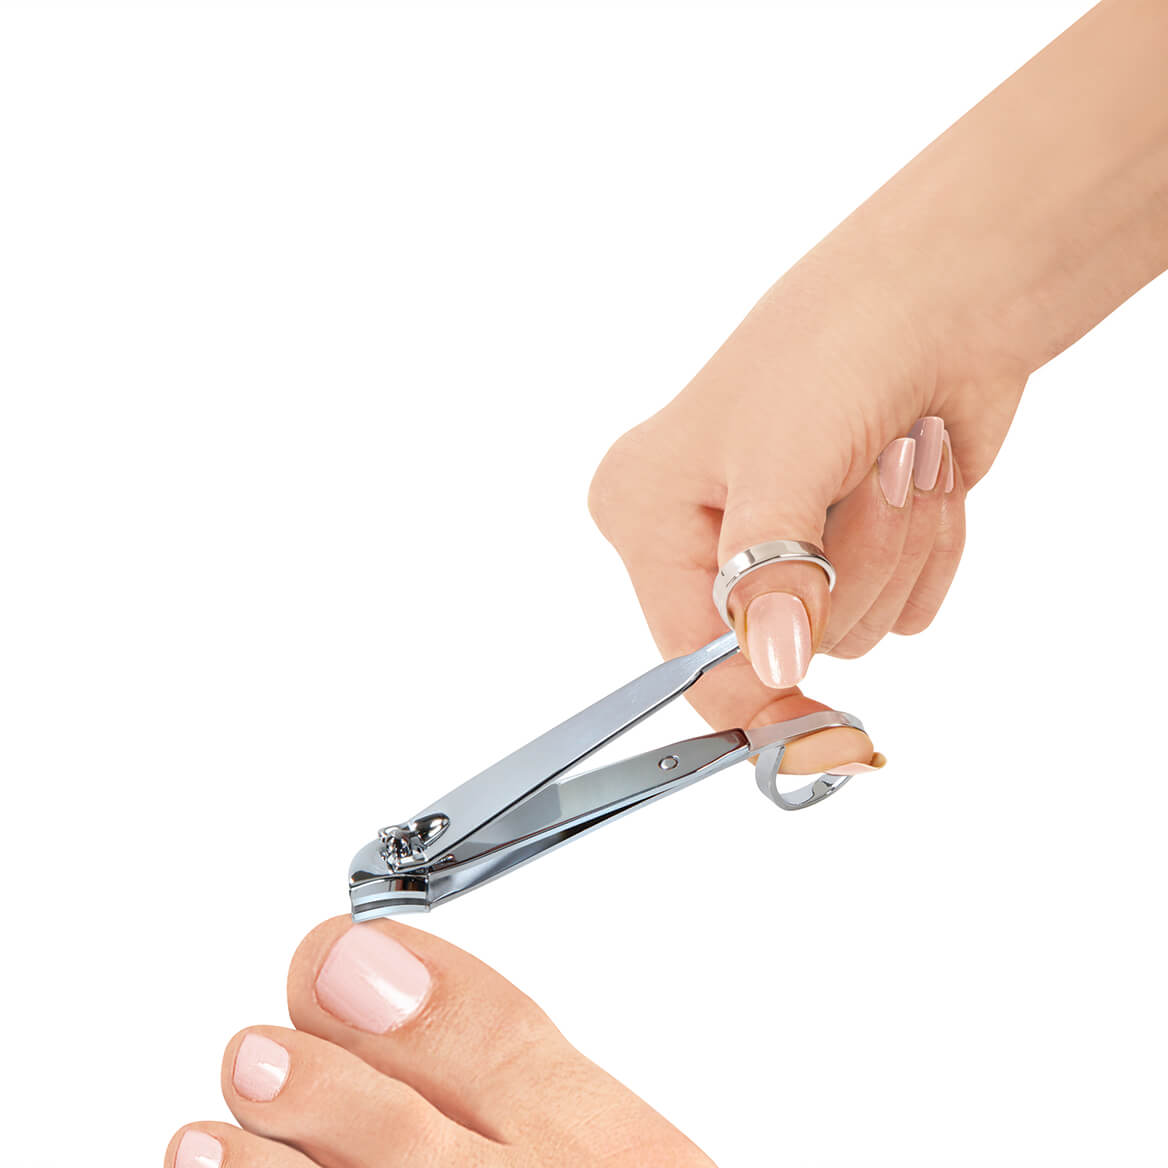 EZ Grip Side Cut Toenail Clippers-370150